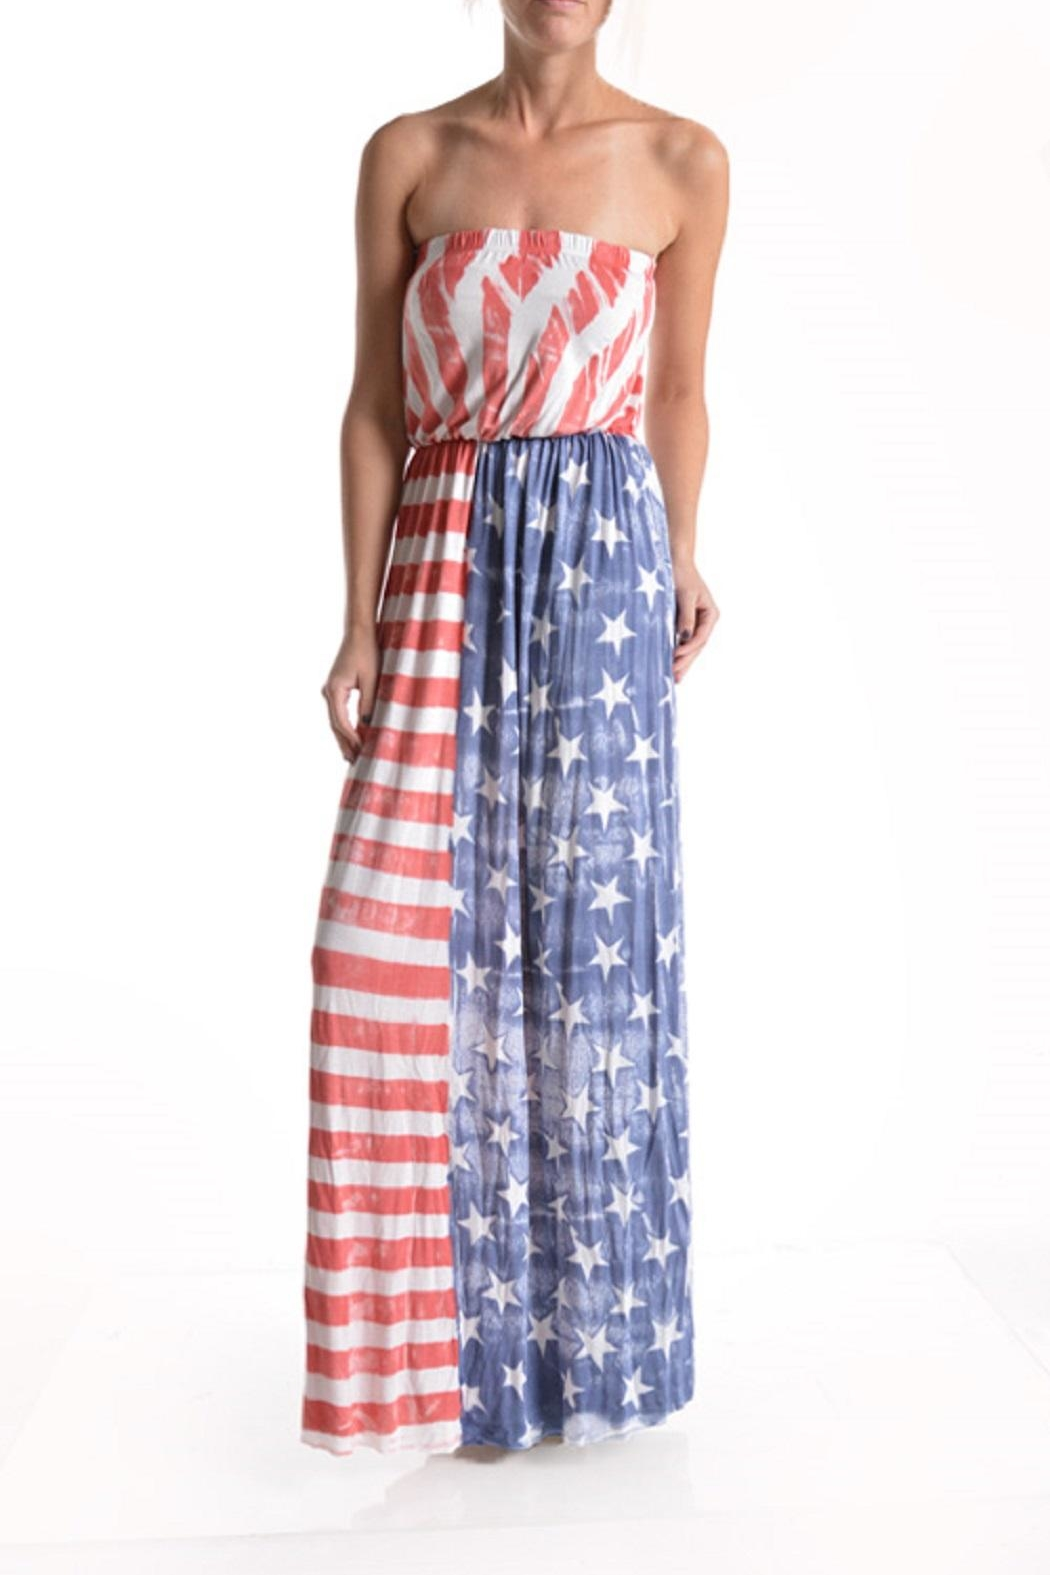 T-Party Fashion Vintage American Flag from Georgia by Posh Clothing ...